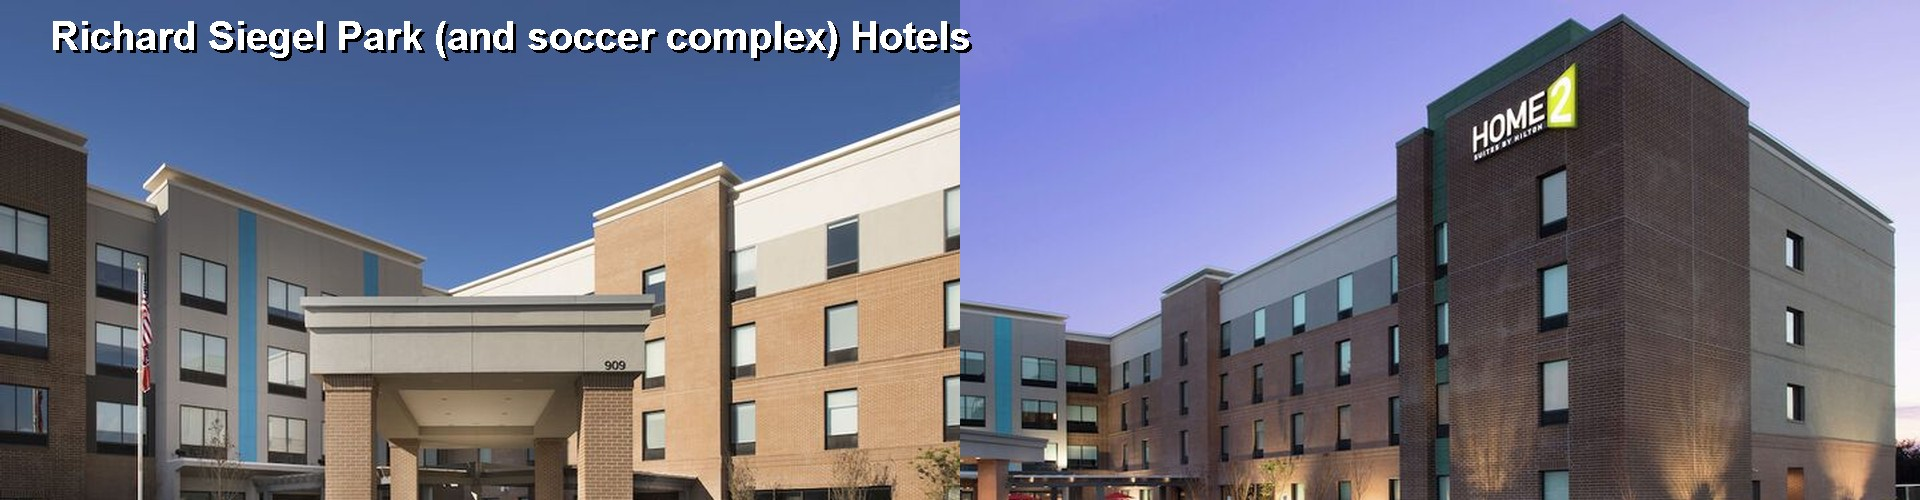 Hotels Near Richard Siegel Park And Soccer Complex In